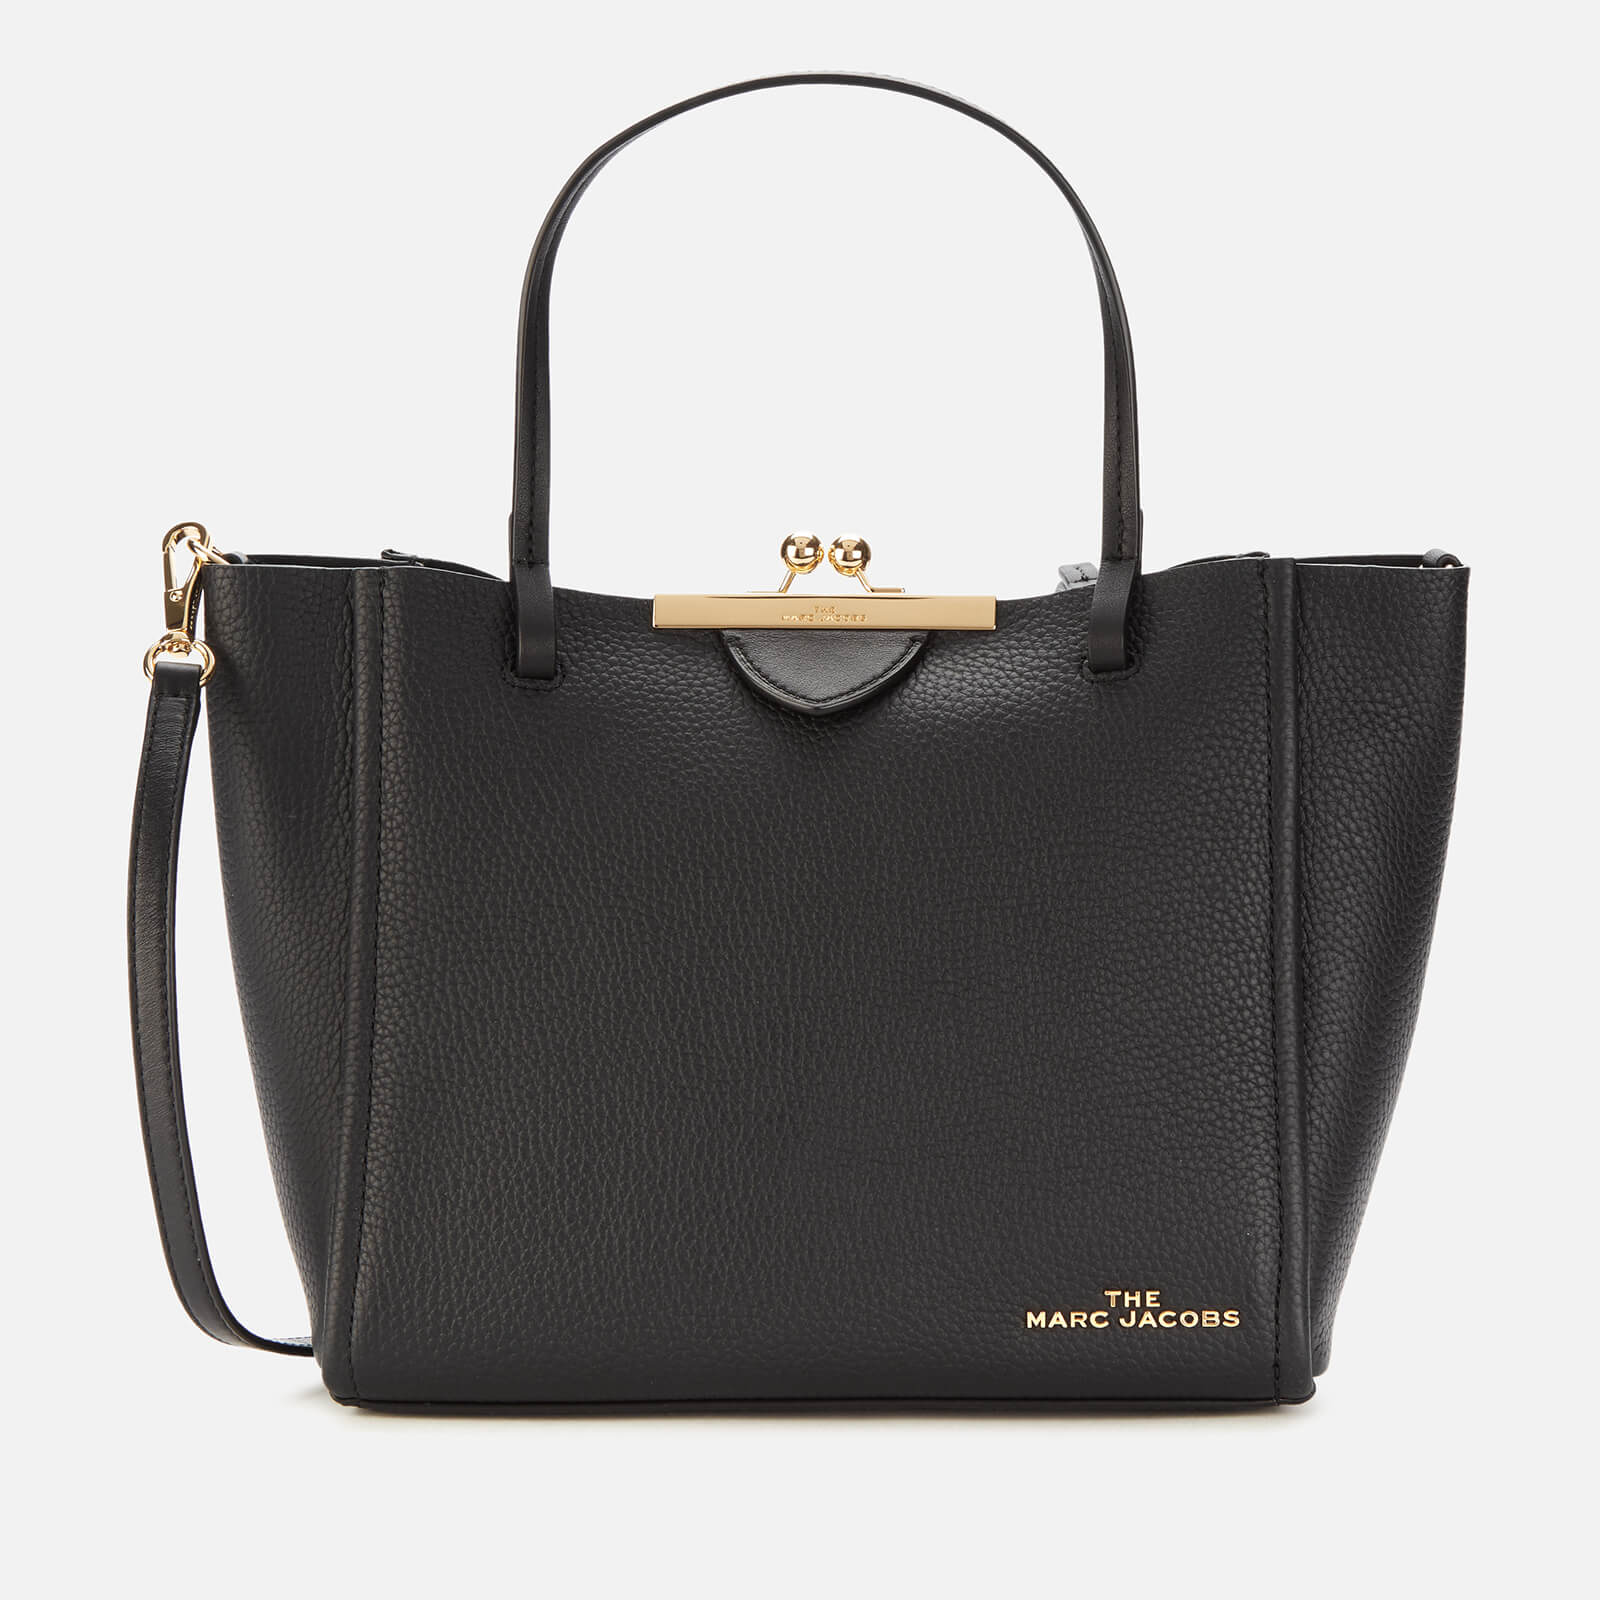 「Marc Jacobs Women's The Kiss Lock Mini Tote Bag - Black」的圖片搜尋結果